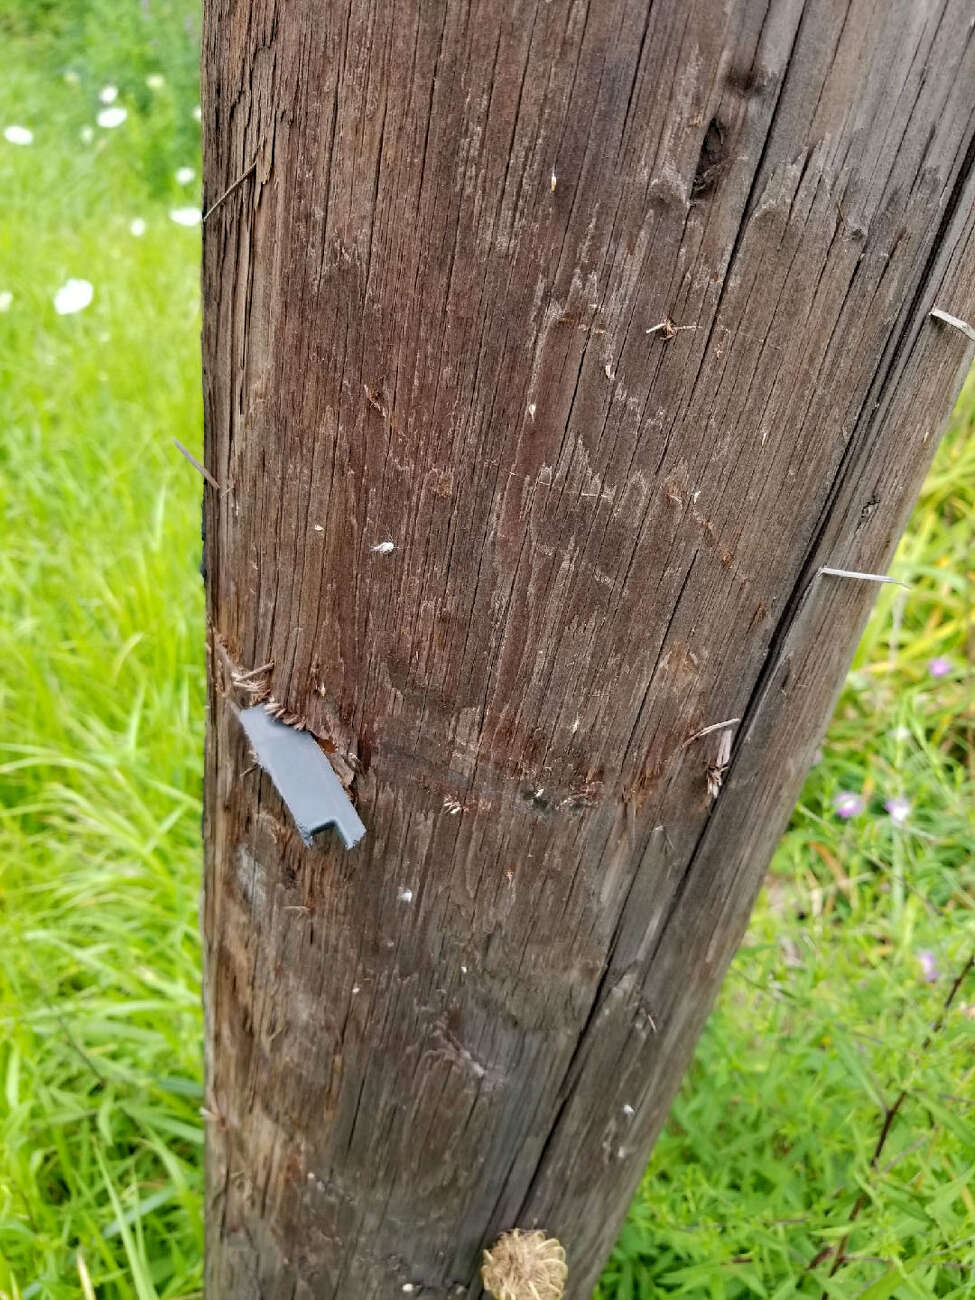 A piece of a side-view mirror from an unmarked SUV driven by State Police Sgt. Frank Stabile III remains embedded in a utility pole along Route 9G in Red Hook. Stabile told troopers he lost control of the vehicle when a deer jumped in front of him. (Provided photo)